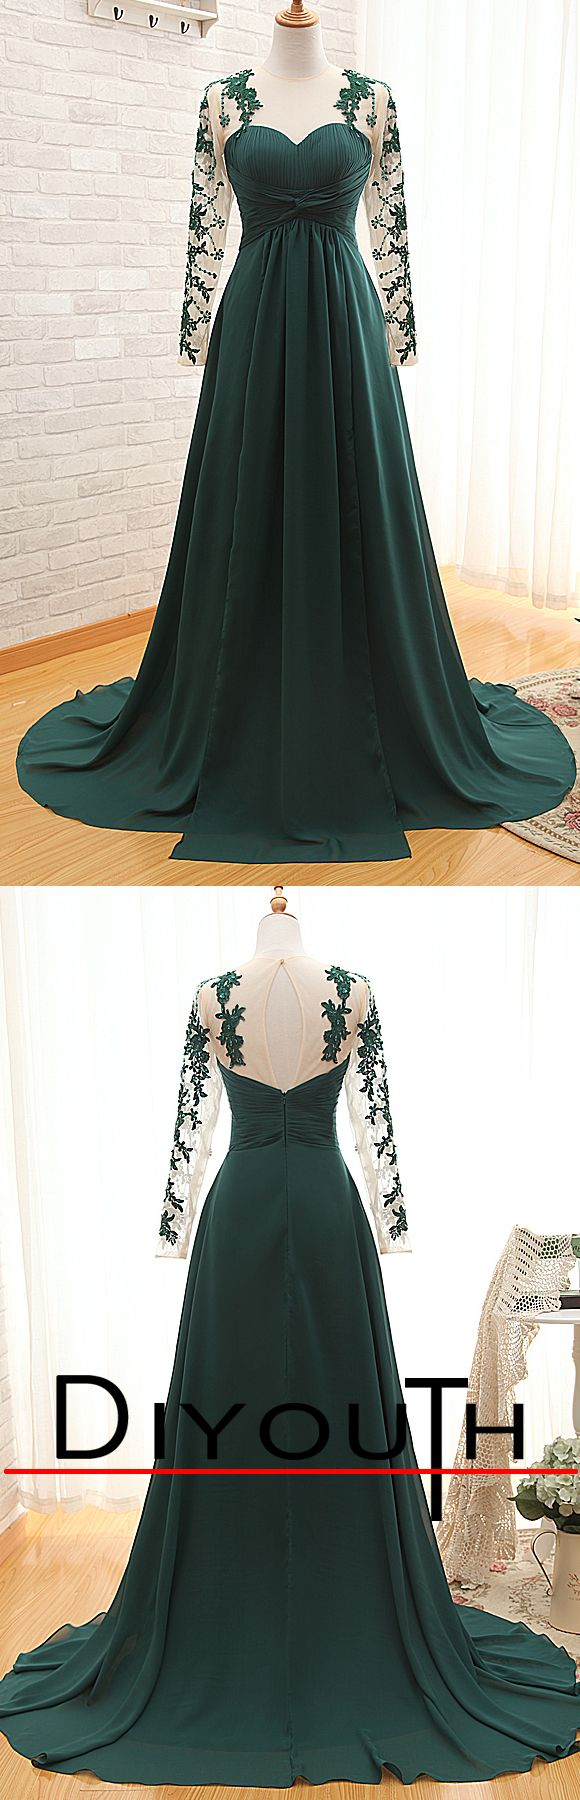 Elegant emerald see through lace long sleeve a line long prom